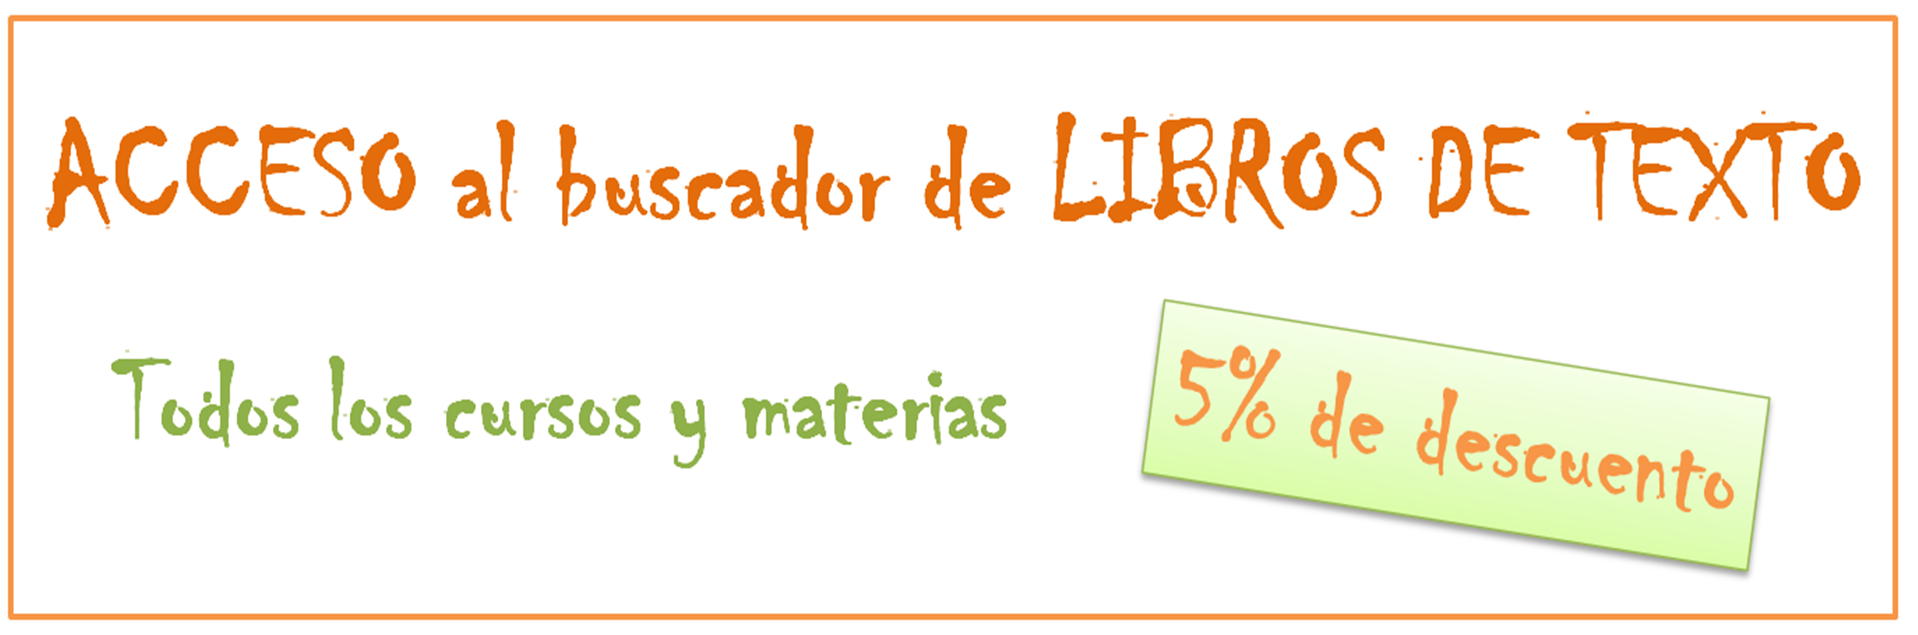 libros-de-texto-baratos-curso-2016-2017-primaria-secundaria